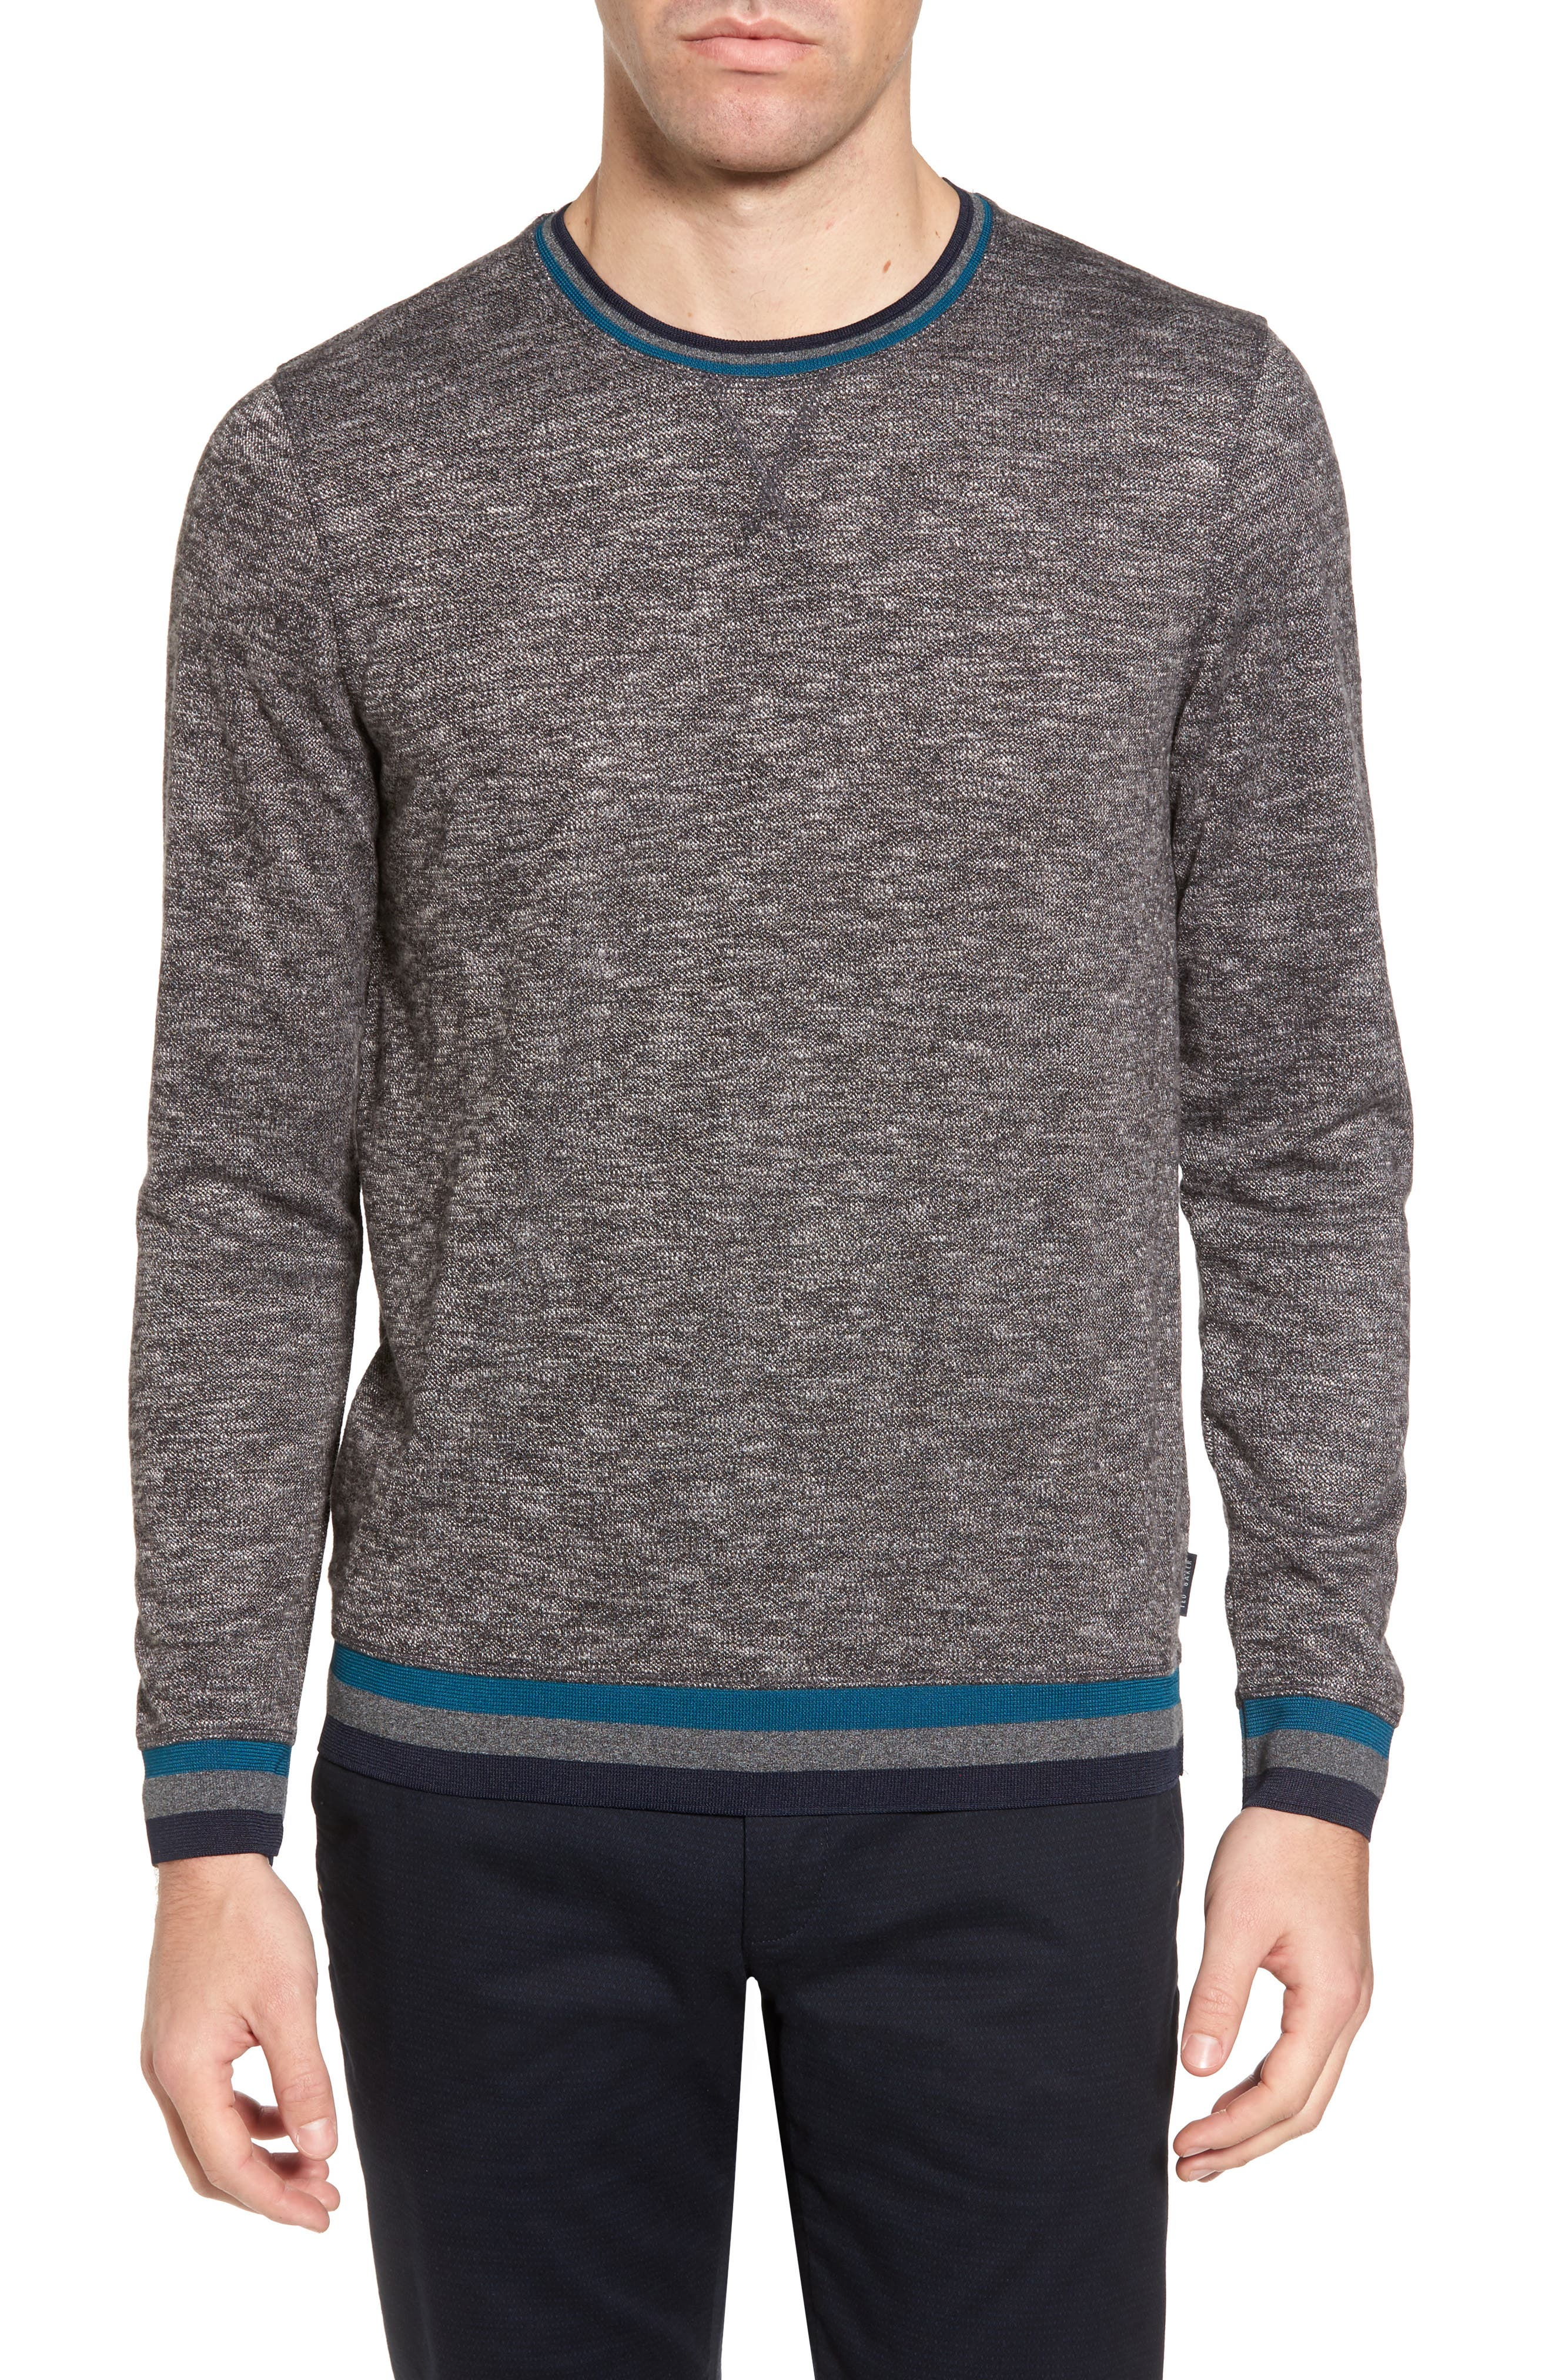 Slater Trim Fit Slub Sweatshirt,                             Main thumbnail 1, color,                             Black